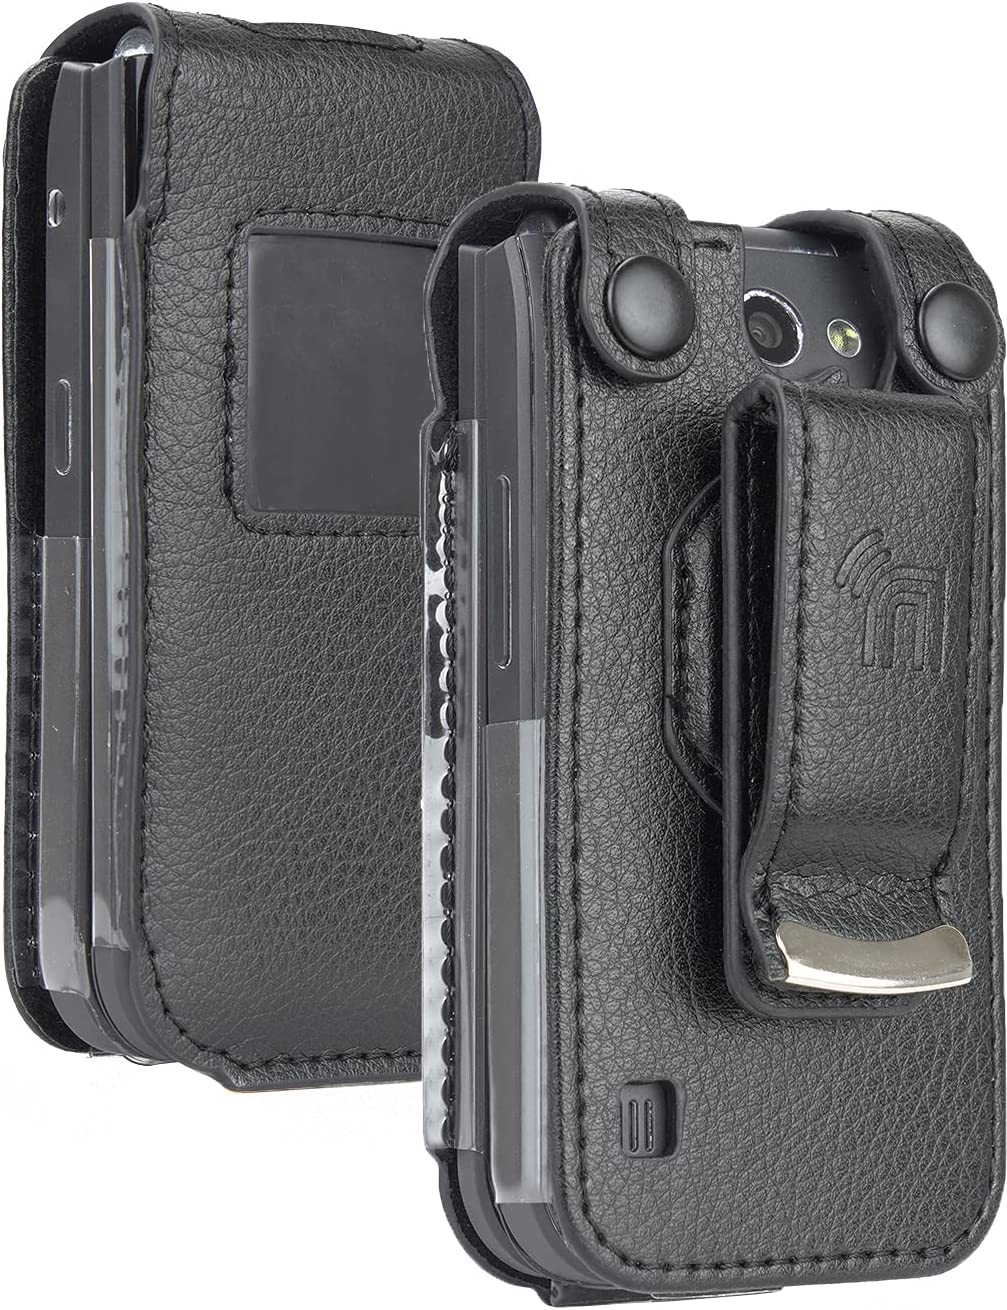 Case for Nokia 2720 V Flip Phone, Nakedcellphone [Black Vegan Leather] Form-Fit Cover with [Built-in Screen Protection] and [Metal Belt Clip]